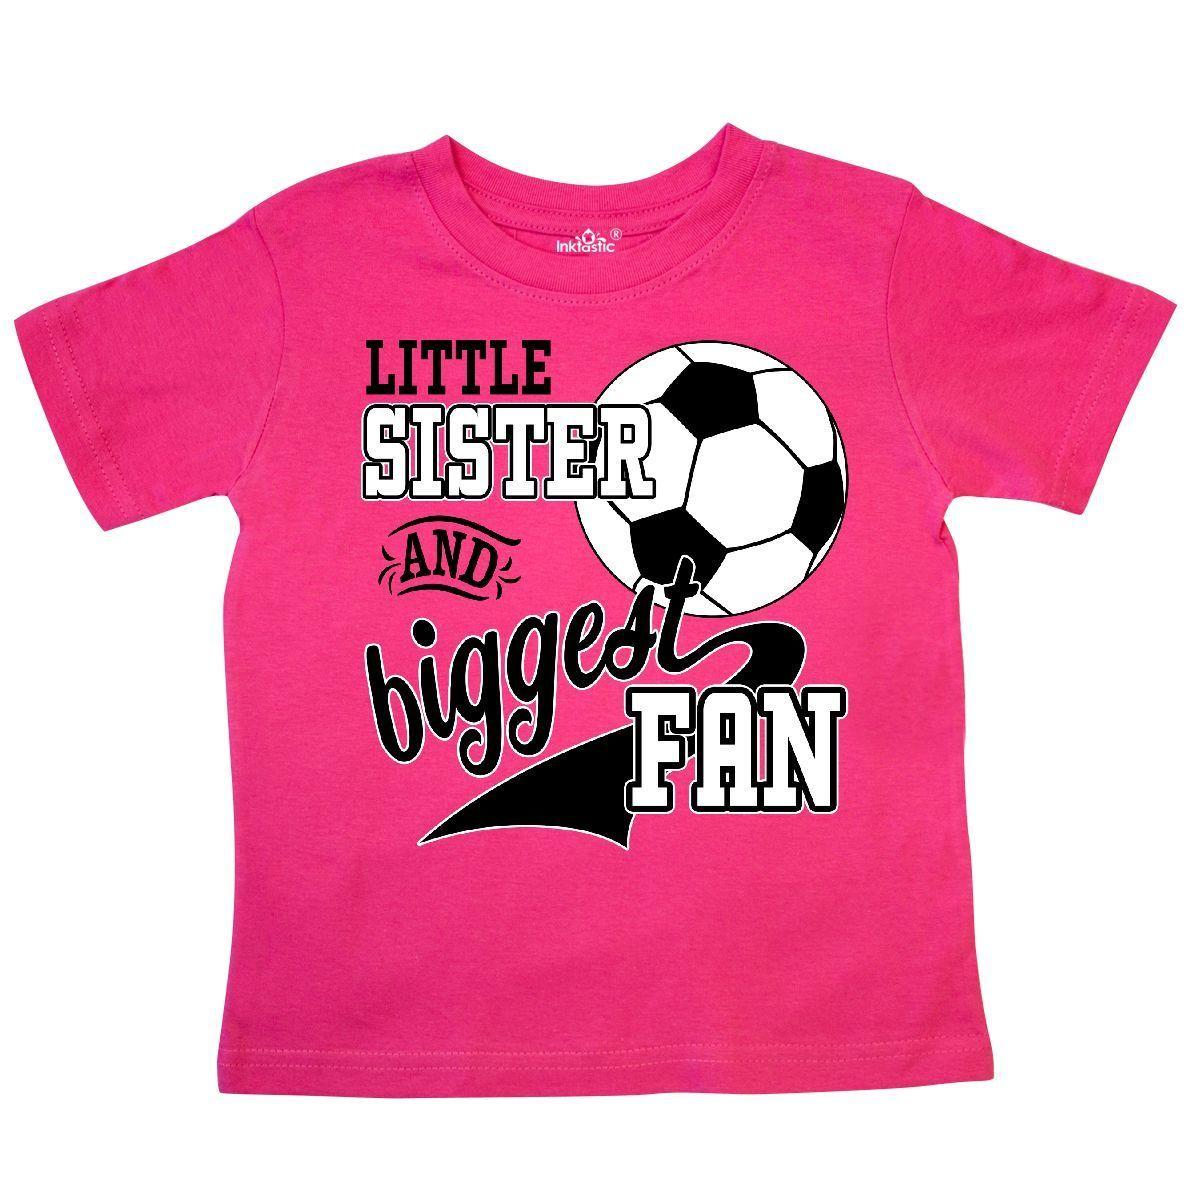 5365df7ab81ee Inktastic Little Sister And Biggest Fan- Soccer Player Toddler T-Shirt  Sports Funny free shipping Unisex Casual tee gift